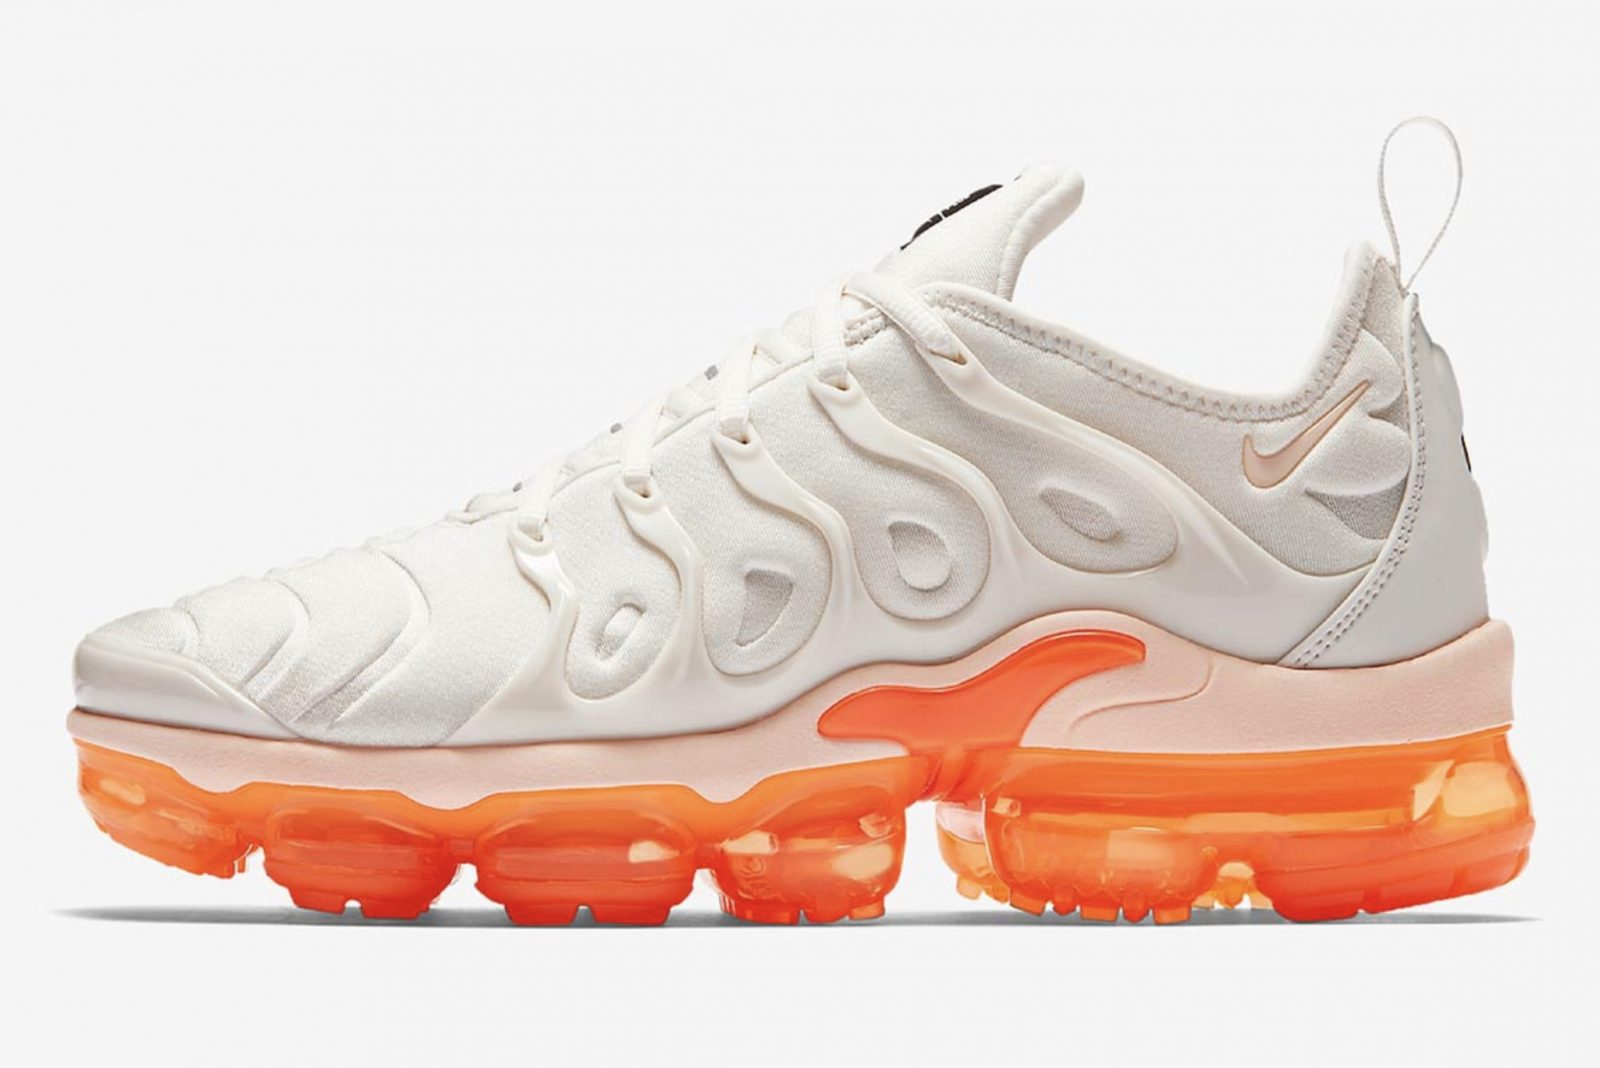 0fbb368d3f2 Nike Air VaporMax Plus Wmns Creamsicle